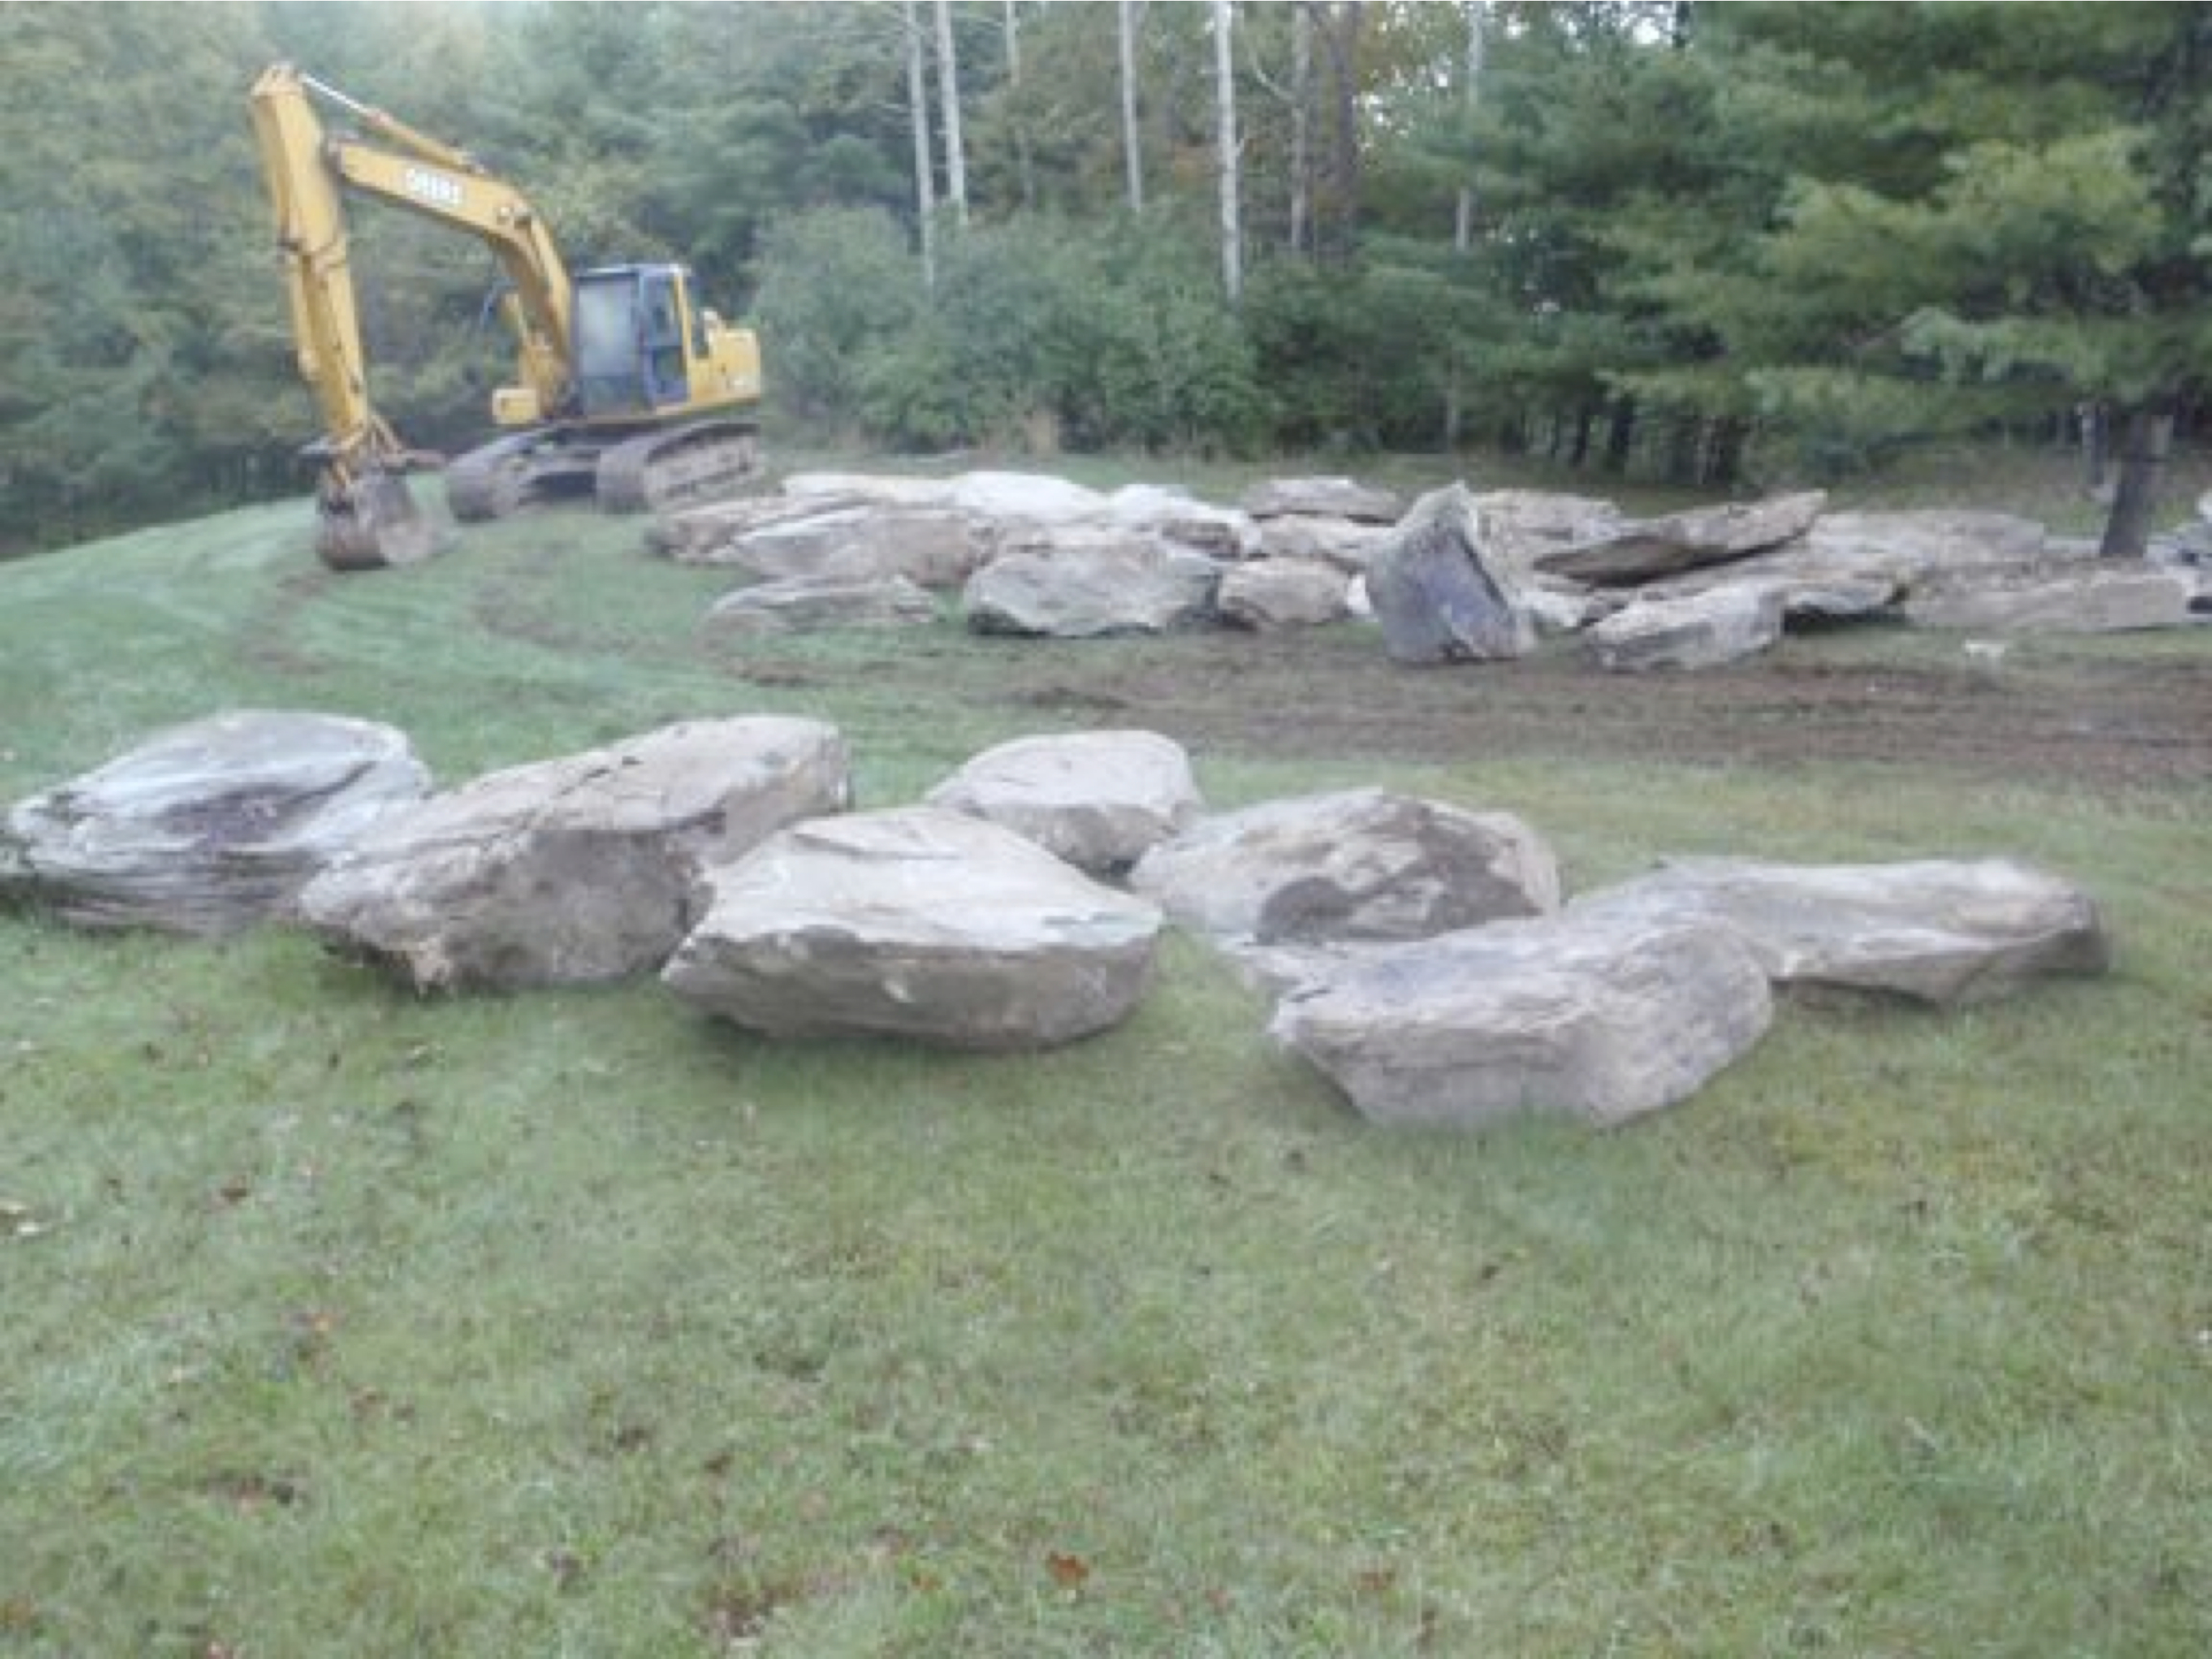 Escavator and Boulders prior to placement.